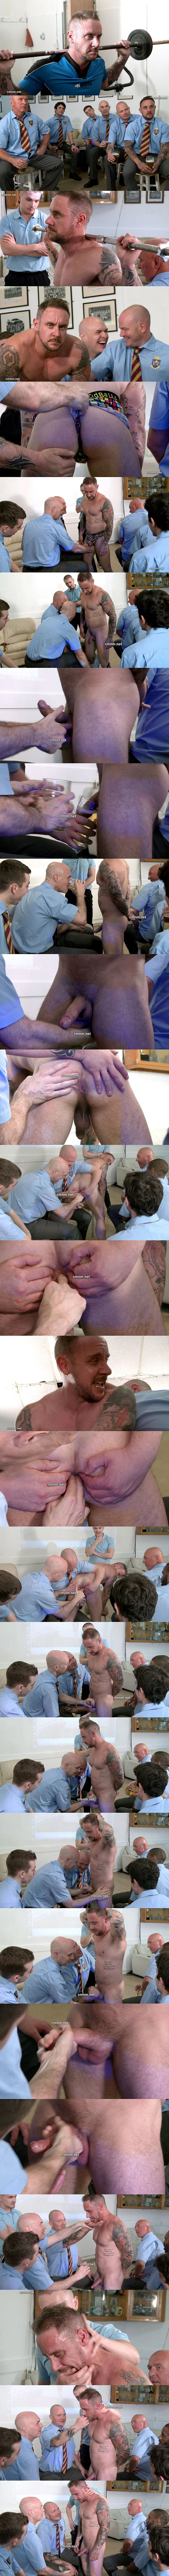 Hot straight inked muscle hunk Leo disciplined, finger fucked and jerked off in Crowncastle Rugby Club at Cmnm 01